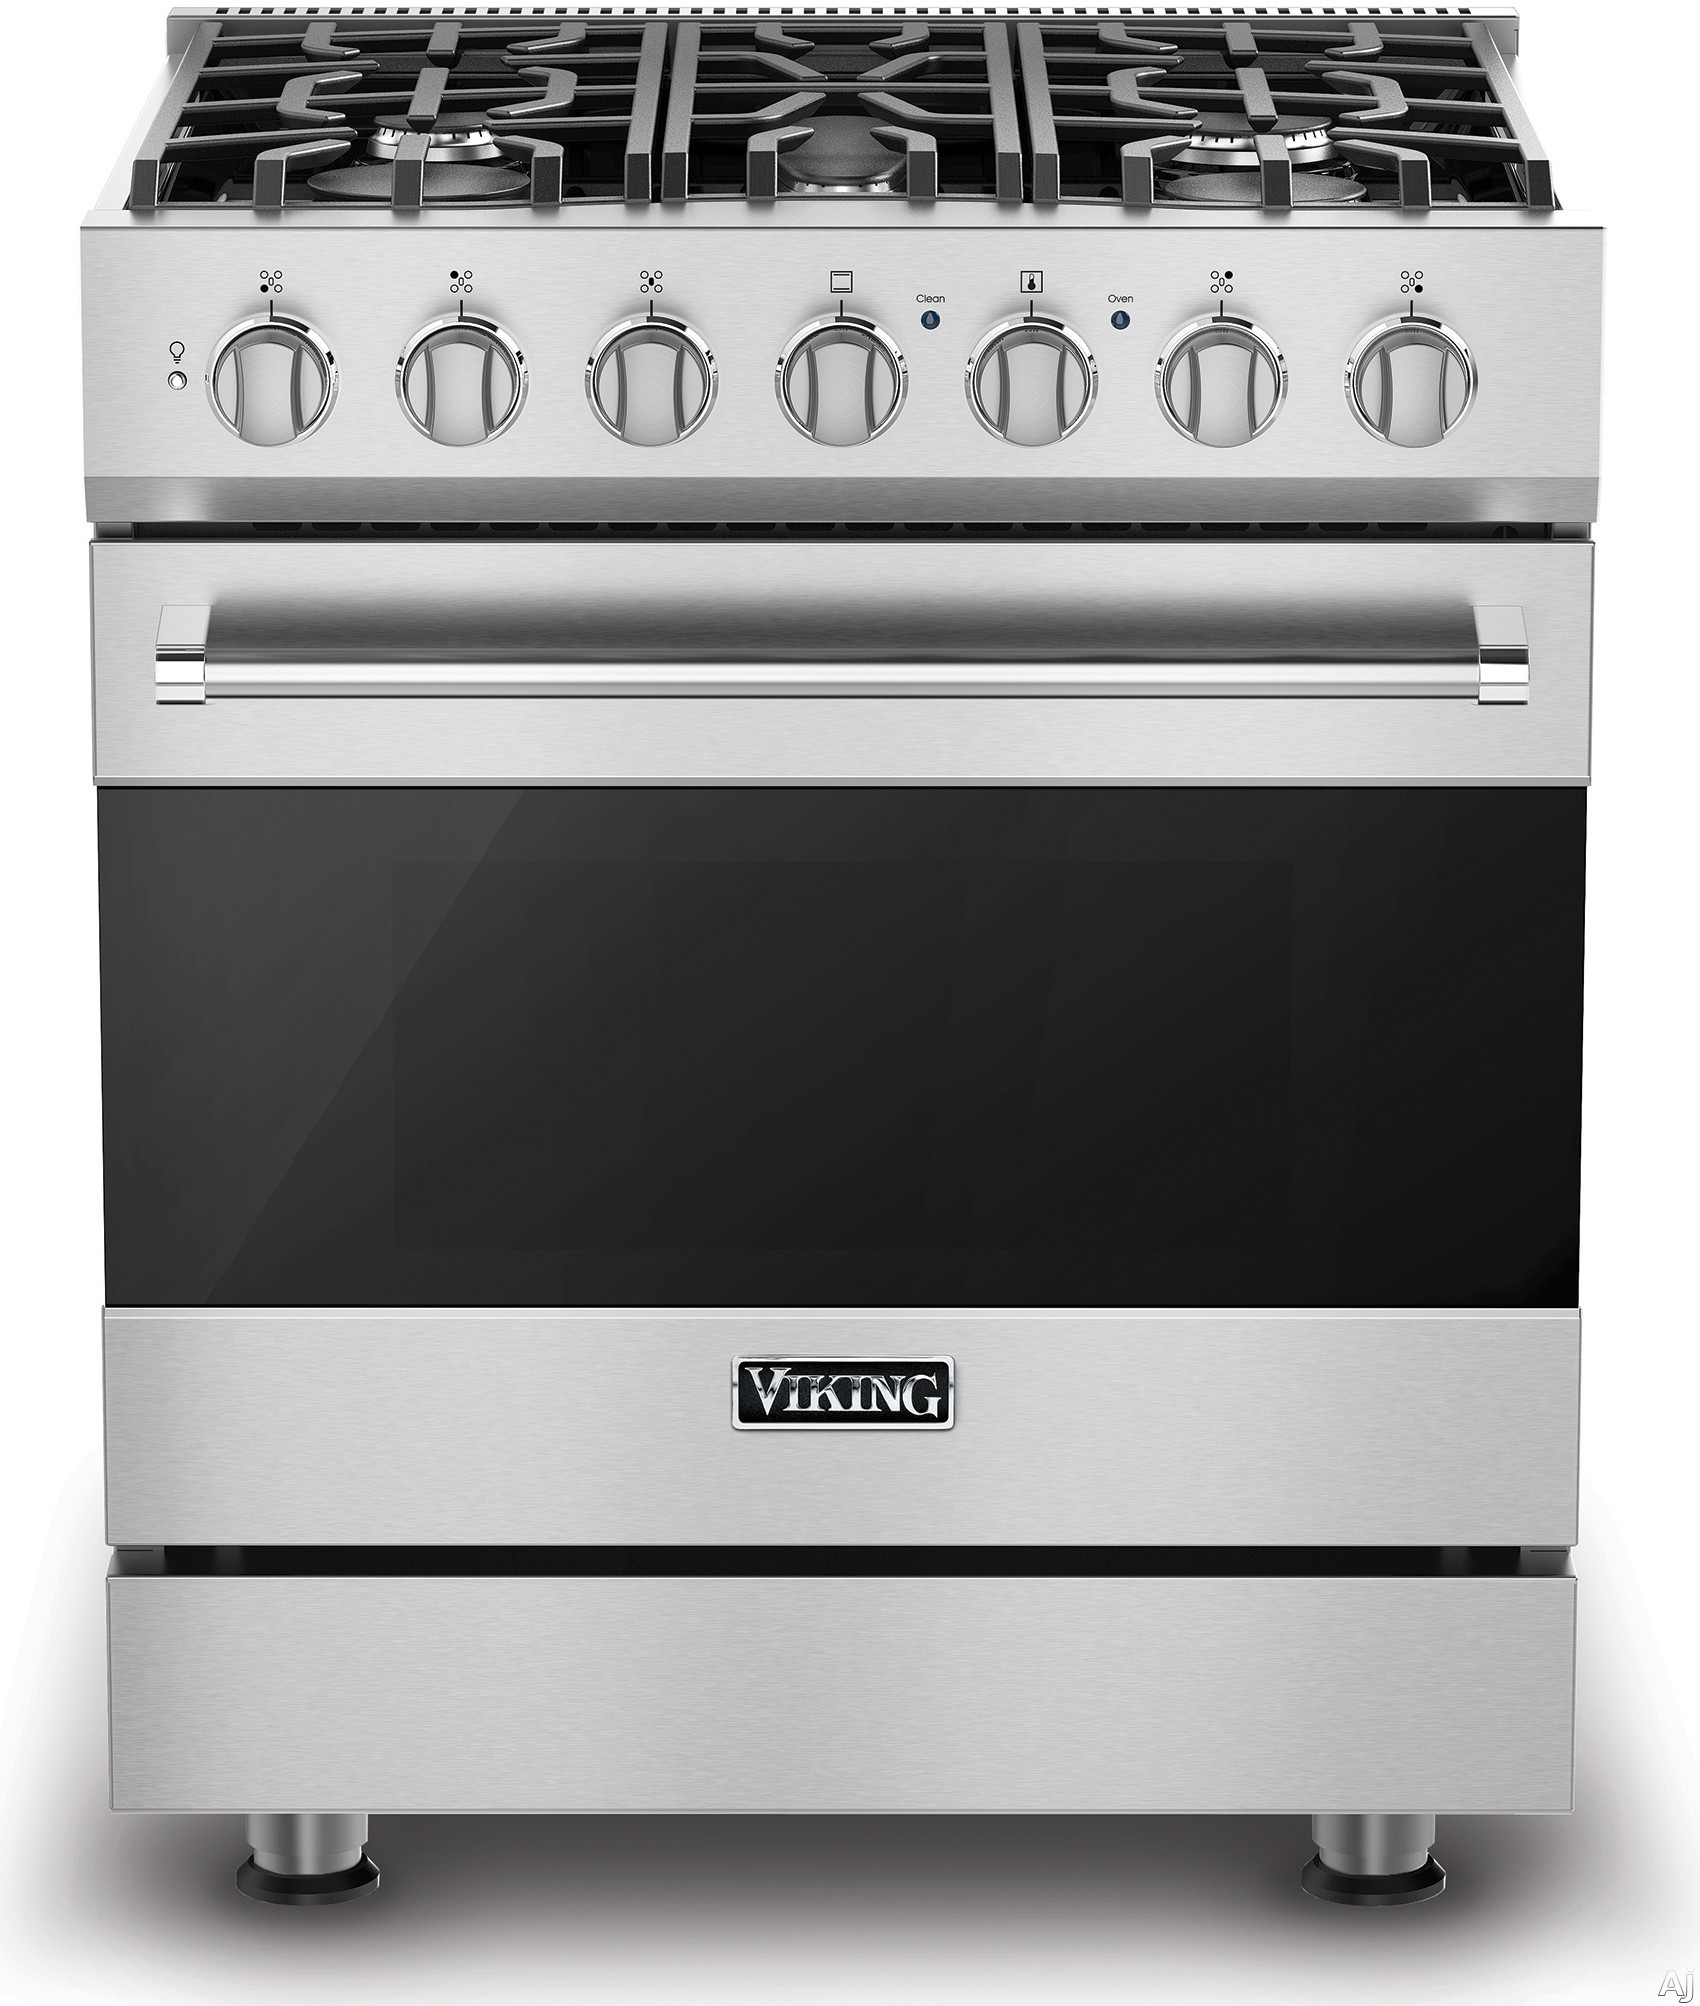 Viking 3 Series RVDR33015B 30 Inch Freestanding Dual Fuel Range with 5 Sealed Burners 18 000 BTU 47 cu ft Convection Oven Heavy Duty Continuous Grates and TruGlide Full Extension Rack